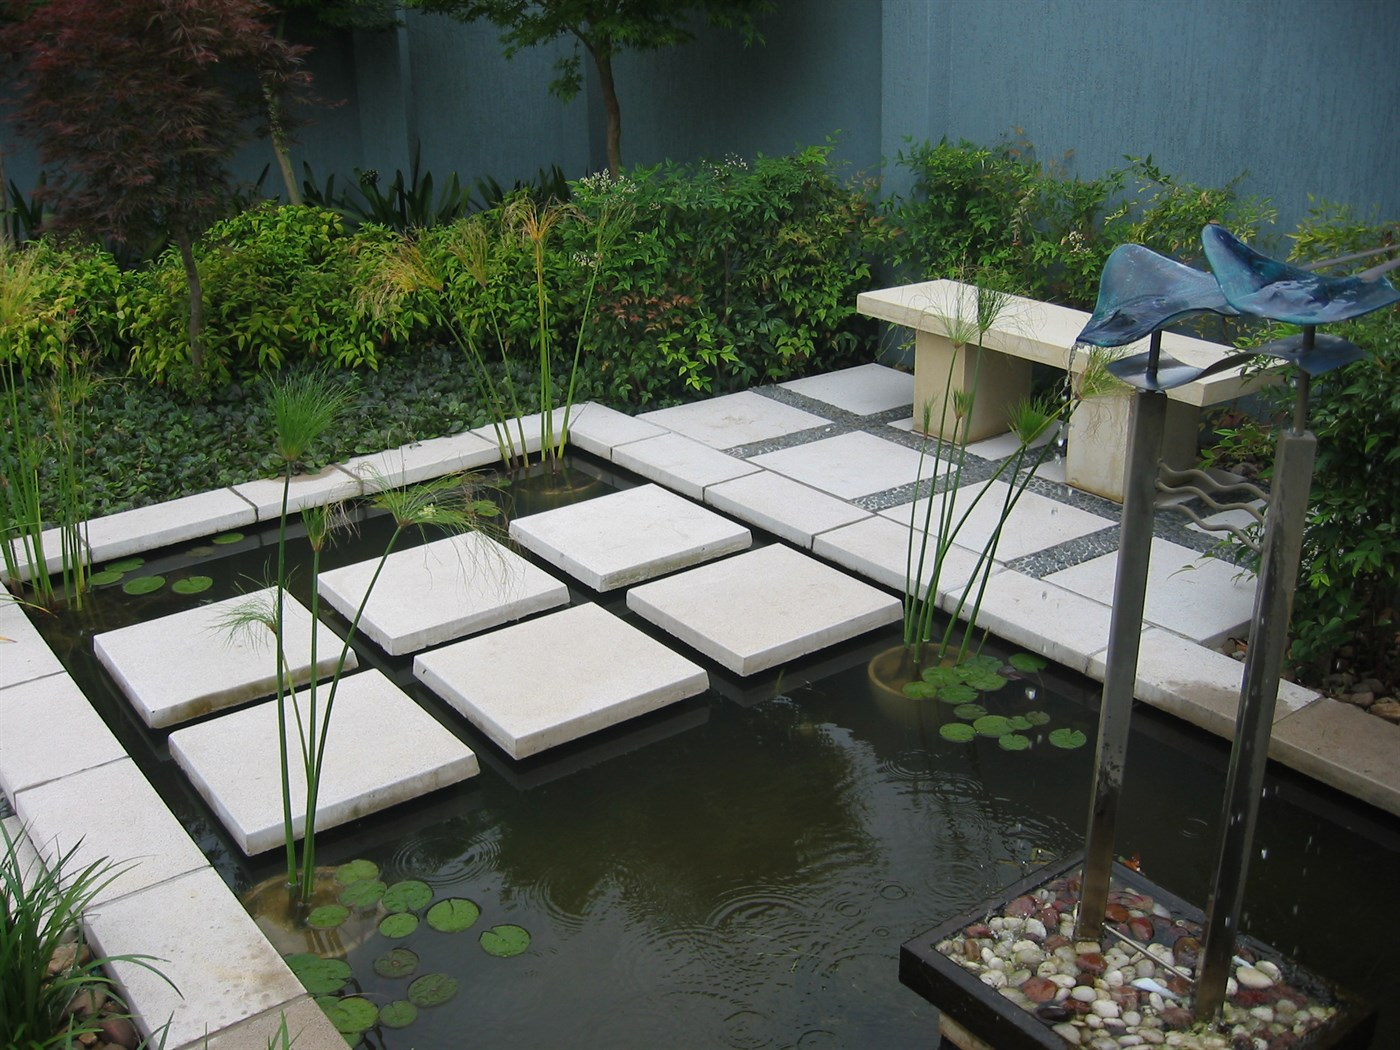 View Of Waterfeature And Stepping Stones · View Of Garden ... Part 59